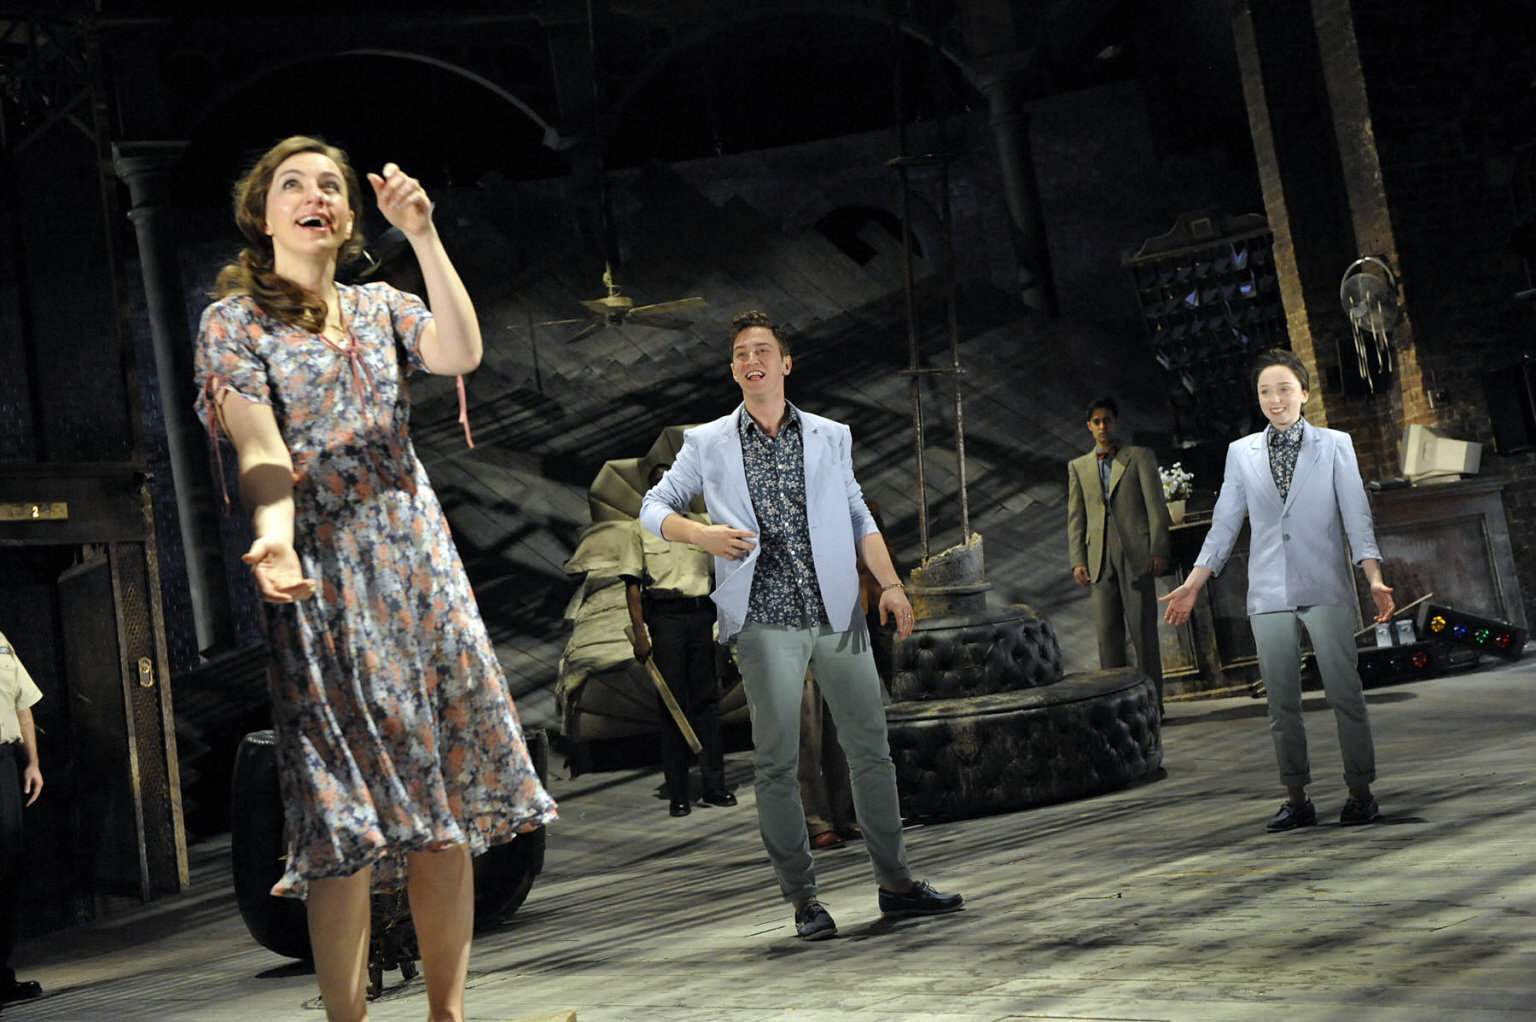 Viola and Sebastian both stand behind a laughing Olivia, dressed in pale blue jackets and patterned shirts in the 2012 production of Twelfth Night.